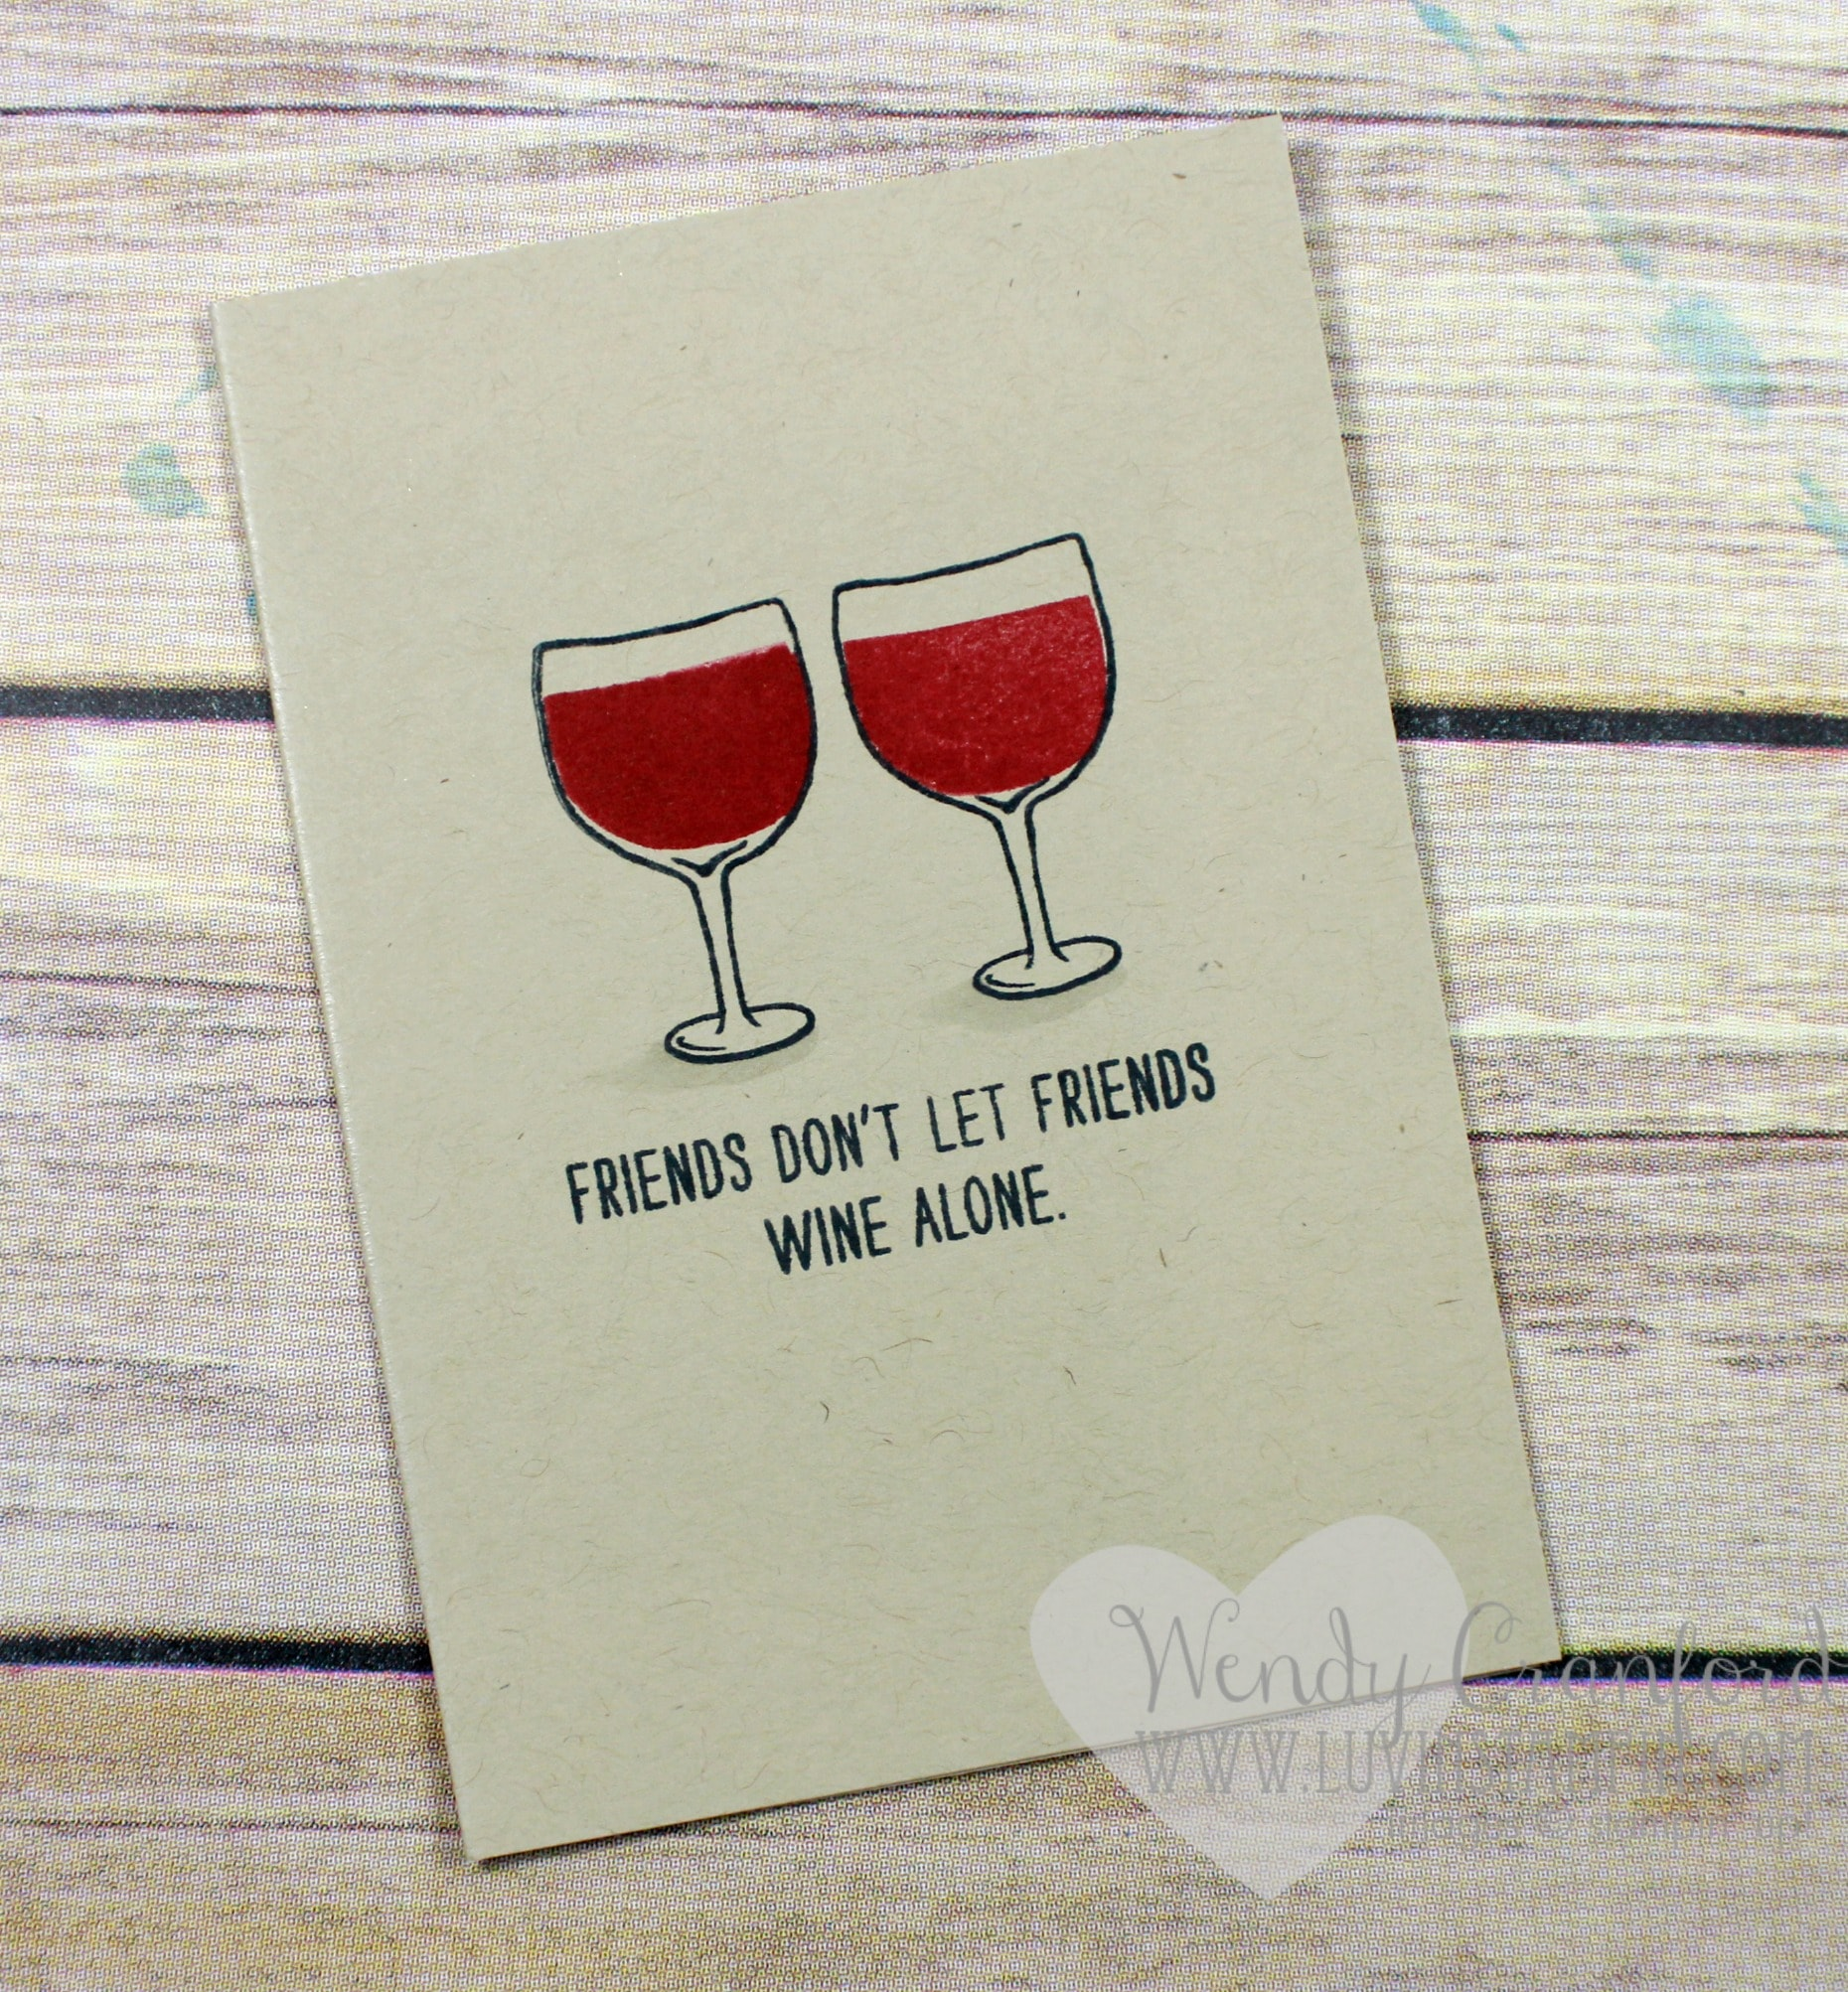 5 card ideas + 1 stamp set featuring the Mixed Drinks stamp set from Stampin' UP! Wendy Cranford www.luvinstampin.com